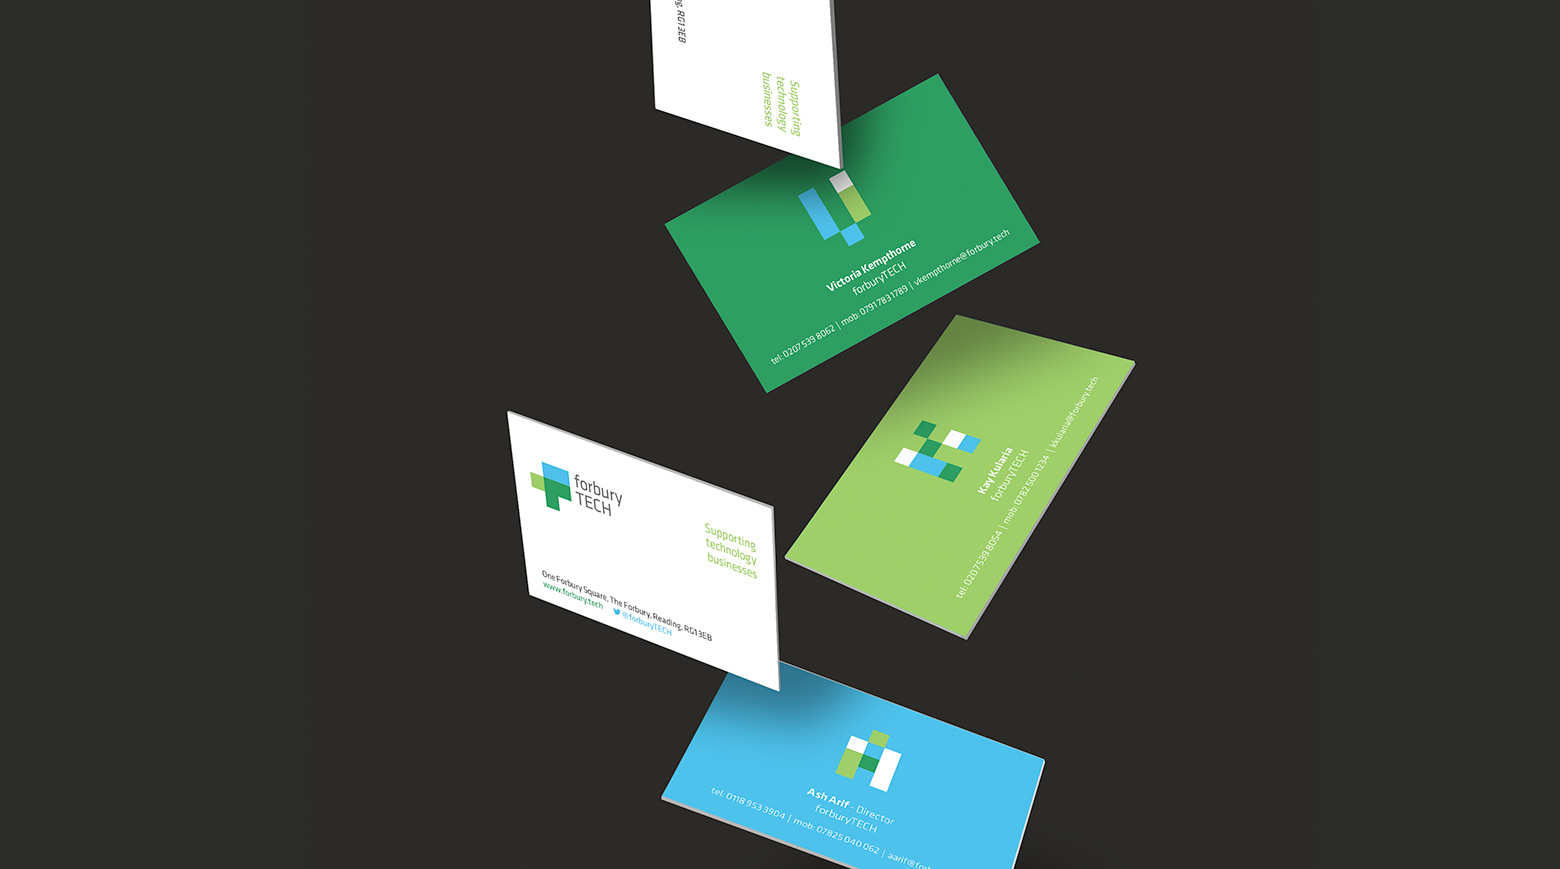 Forbury TECH business card